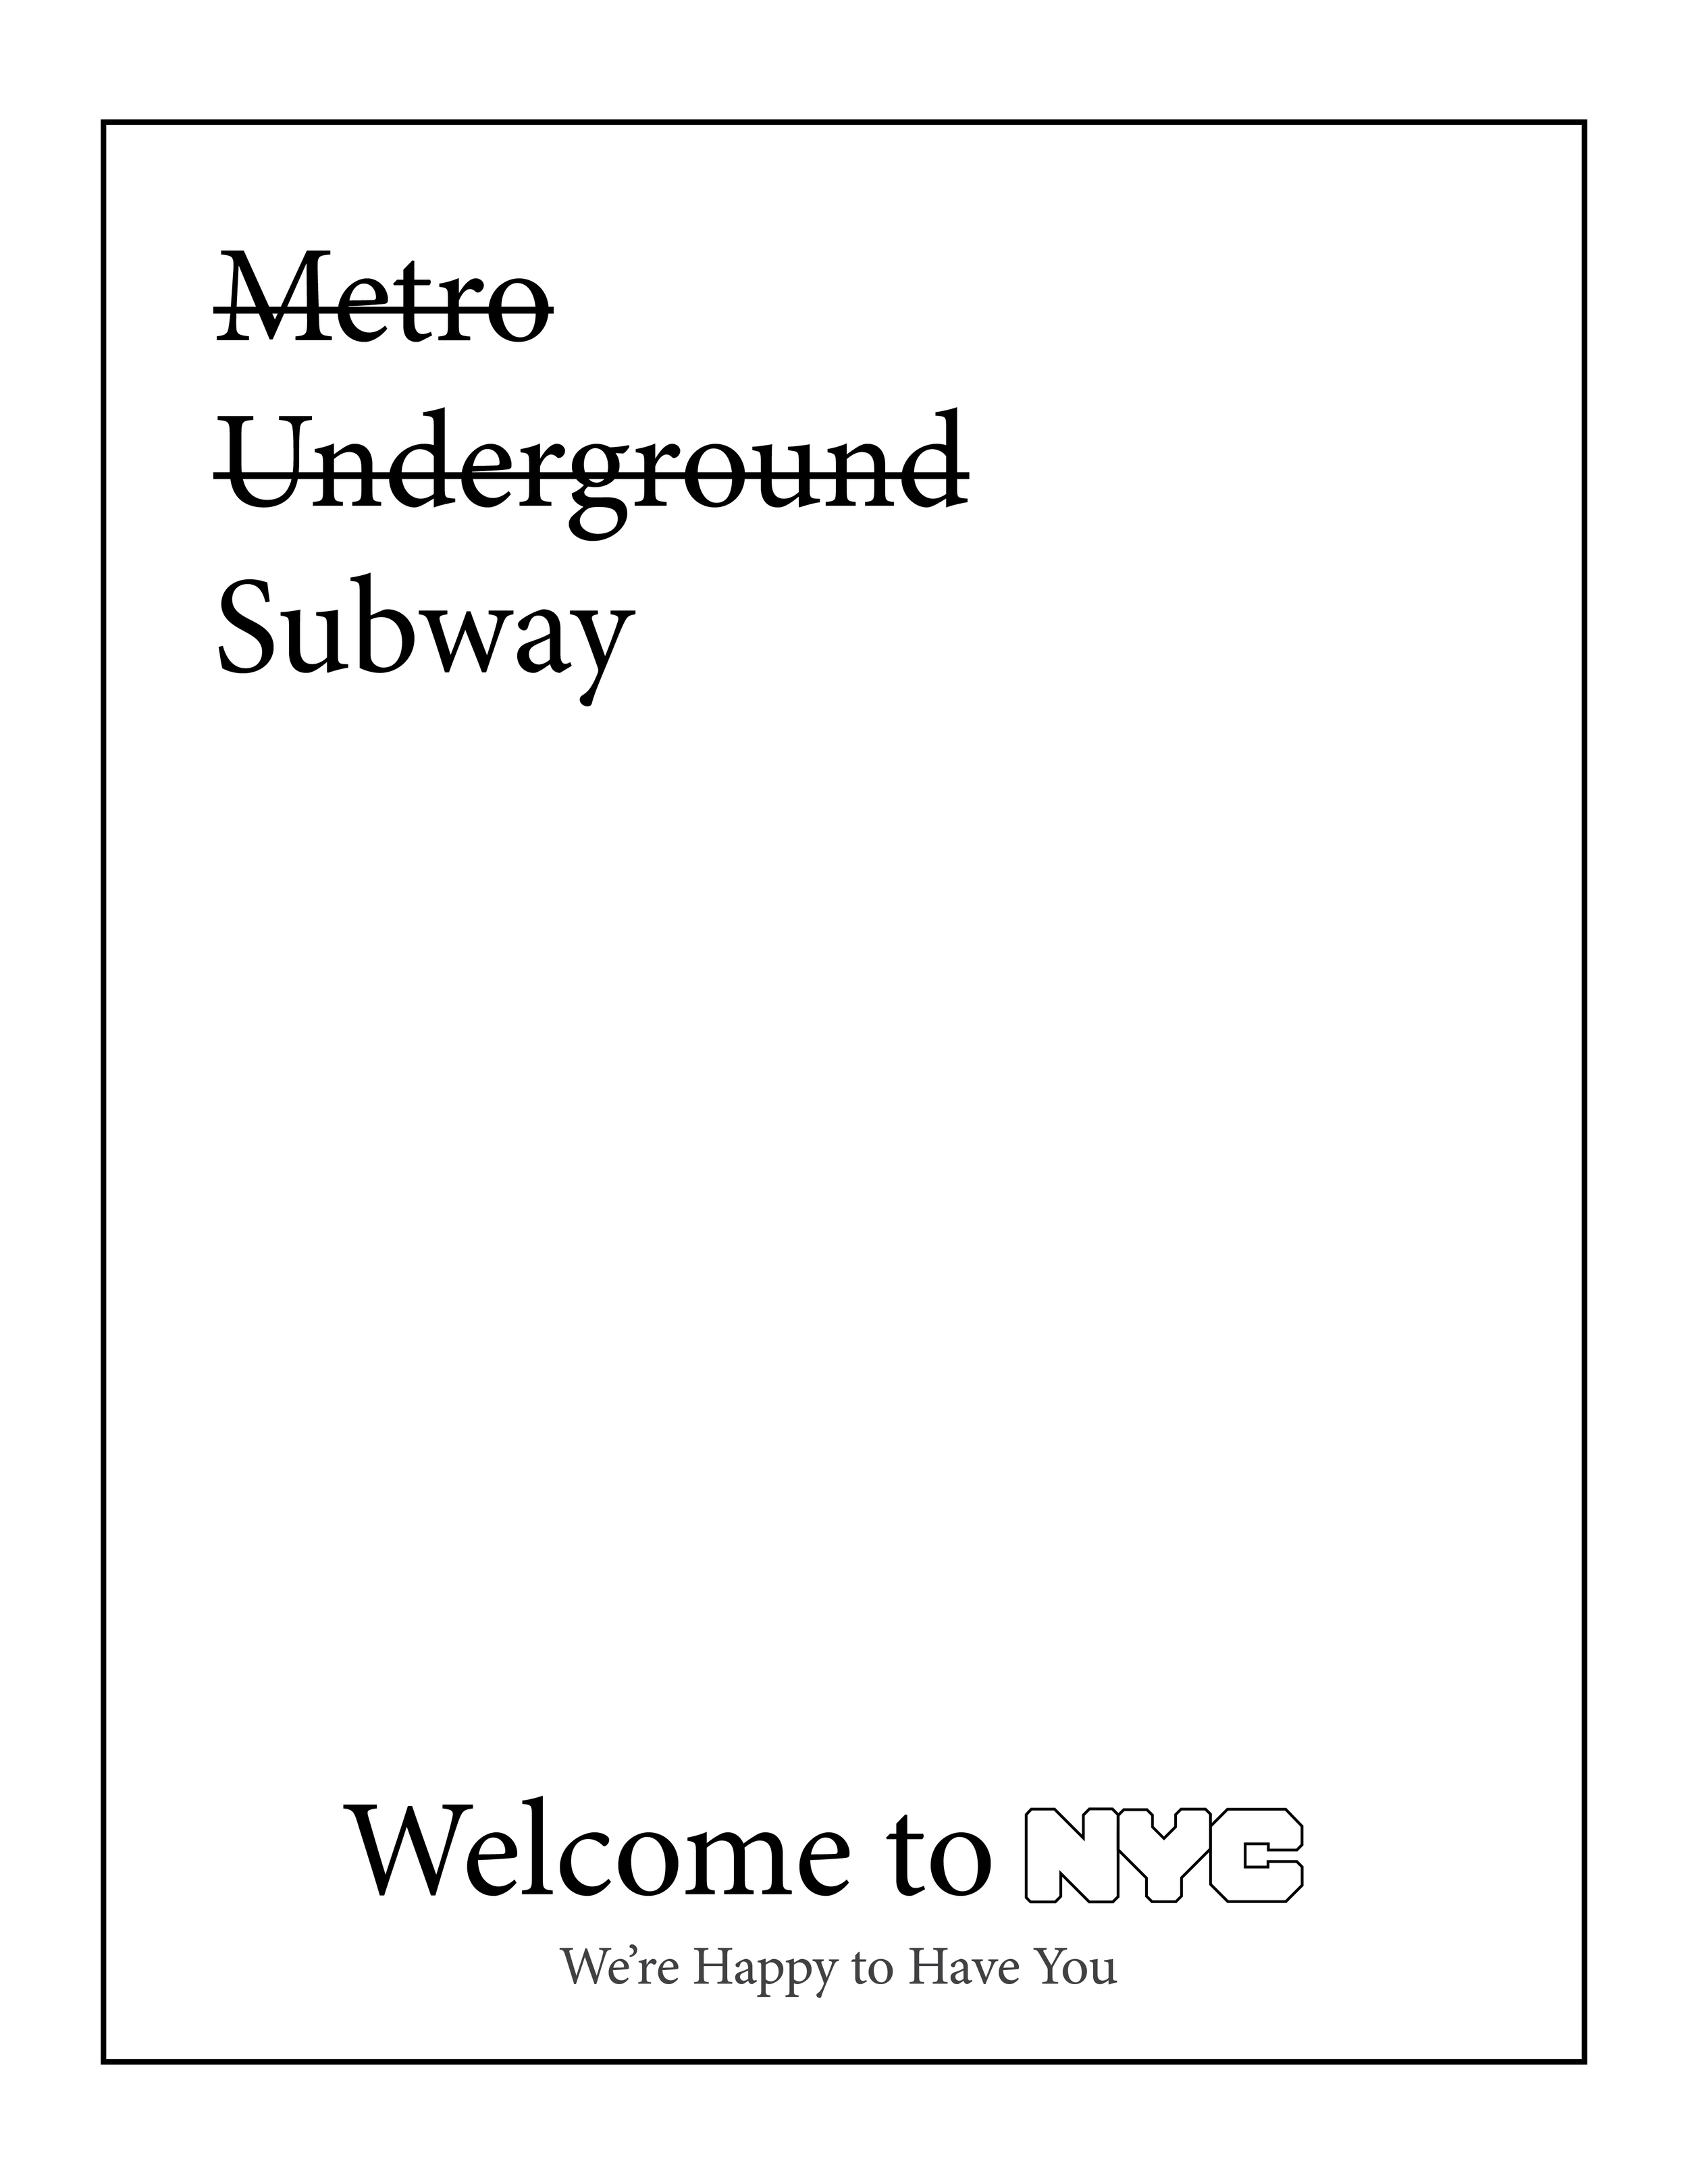 Welcome to NYC We_re Happy to Have You - Subway Letter Size.png